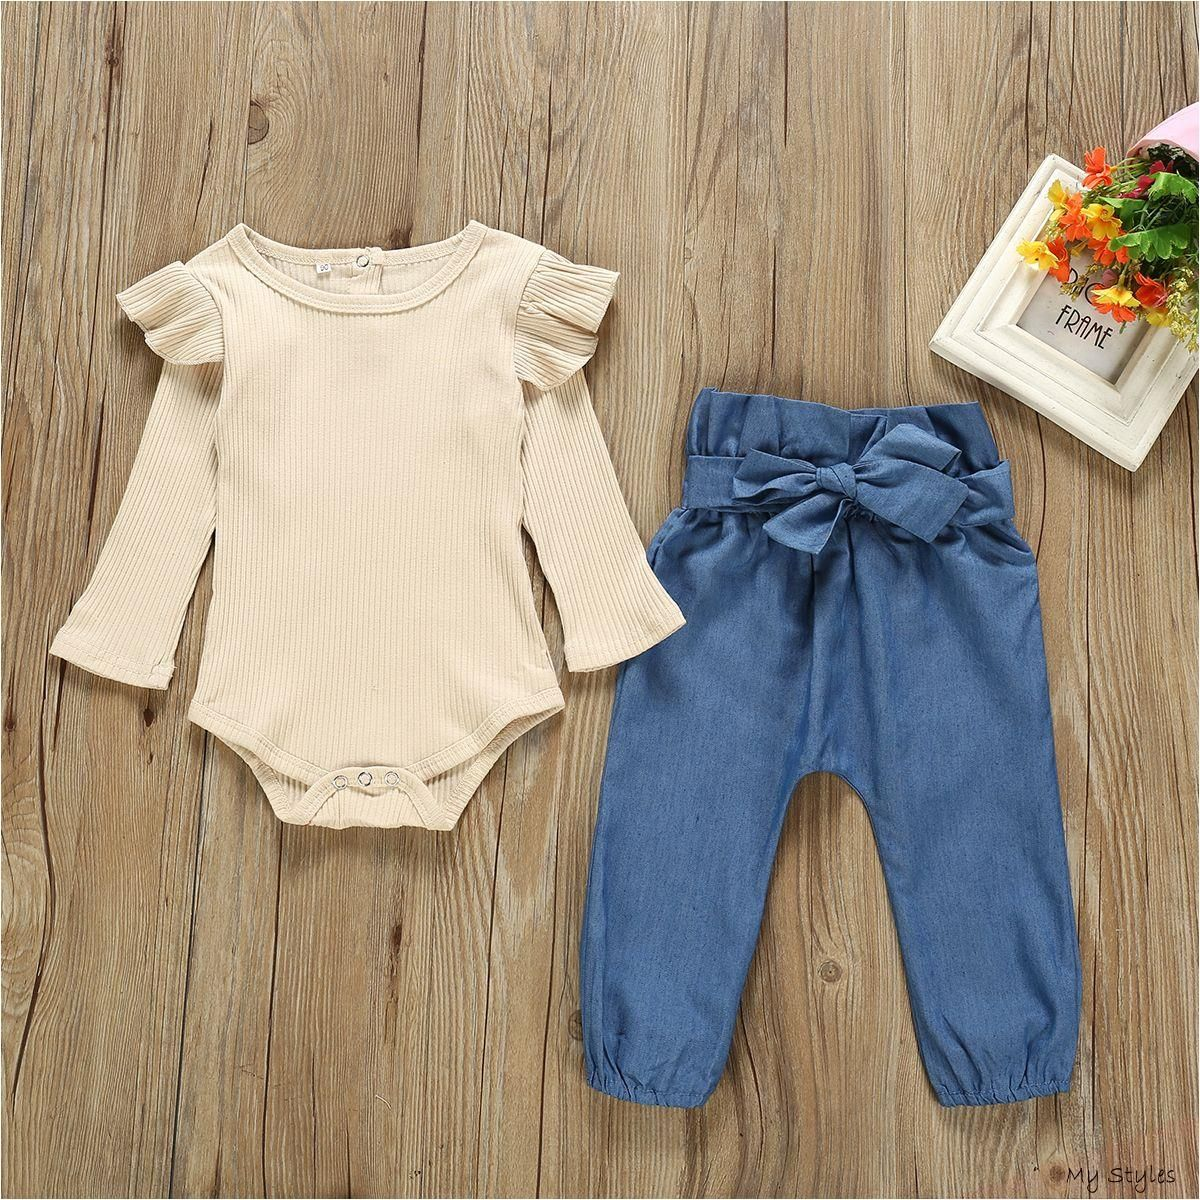 Check out this great stuff I just found at PatPat! #baby #boy #outfits